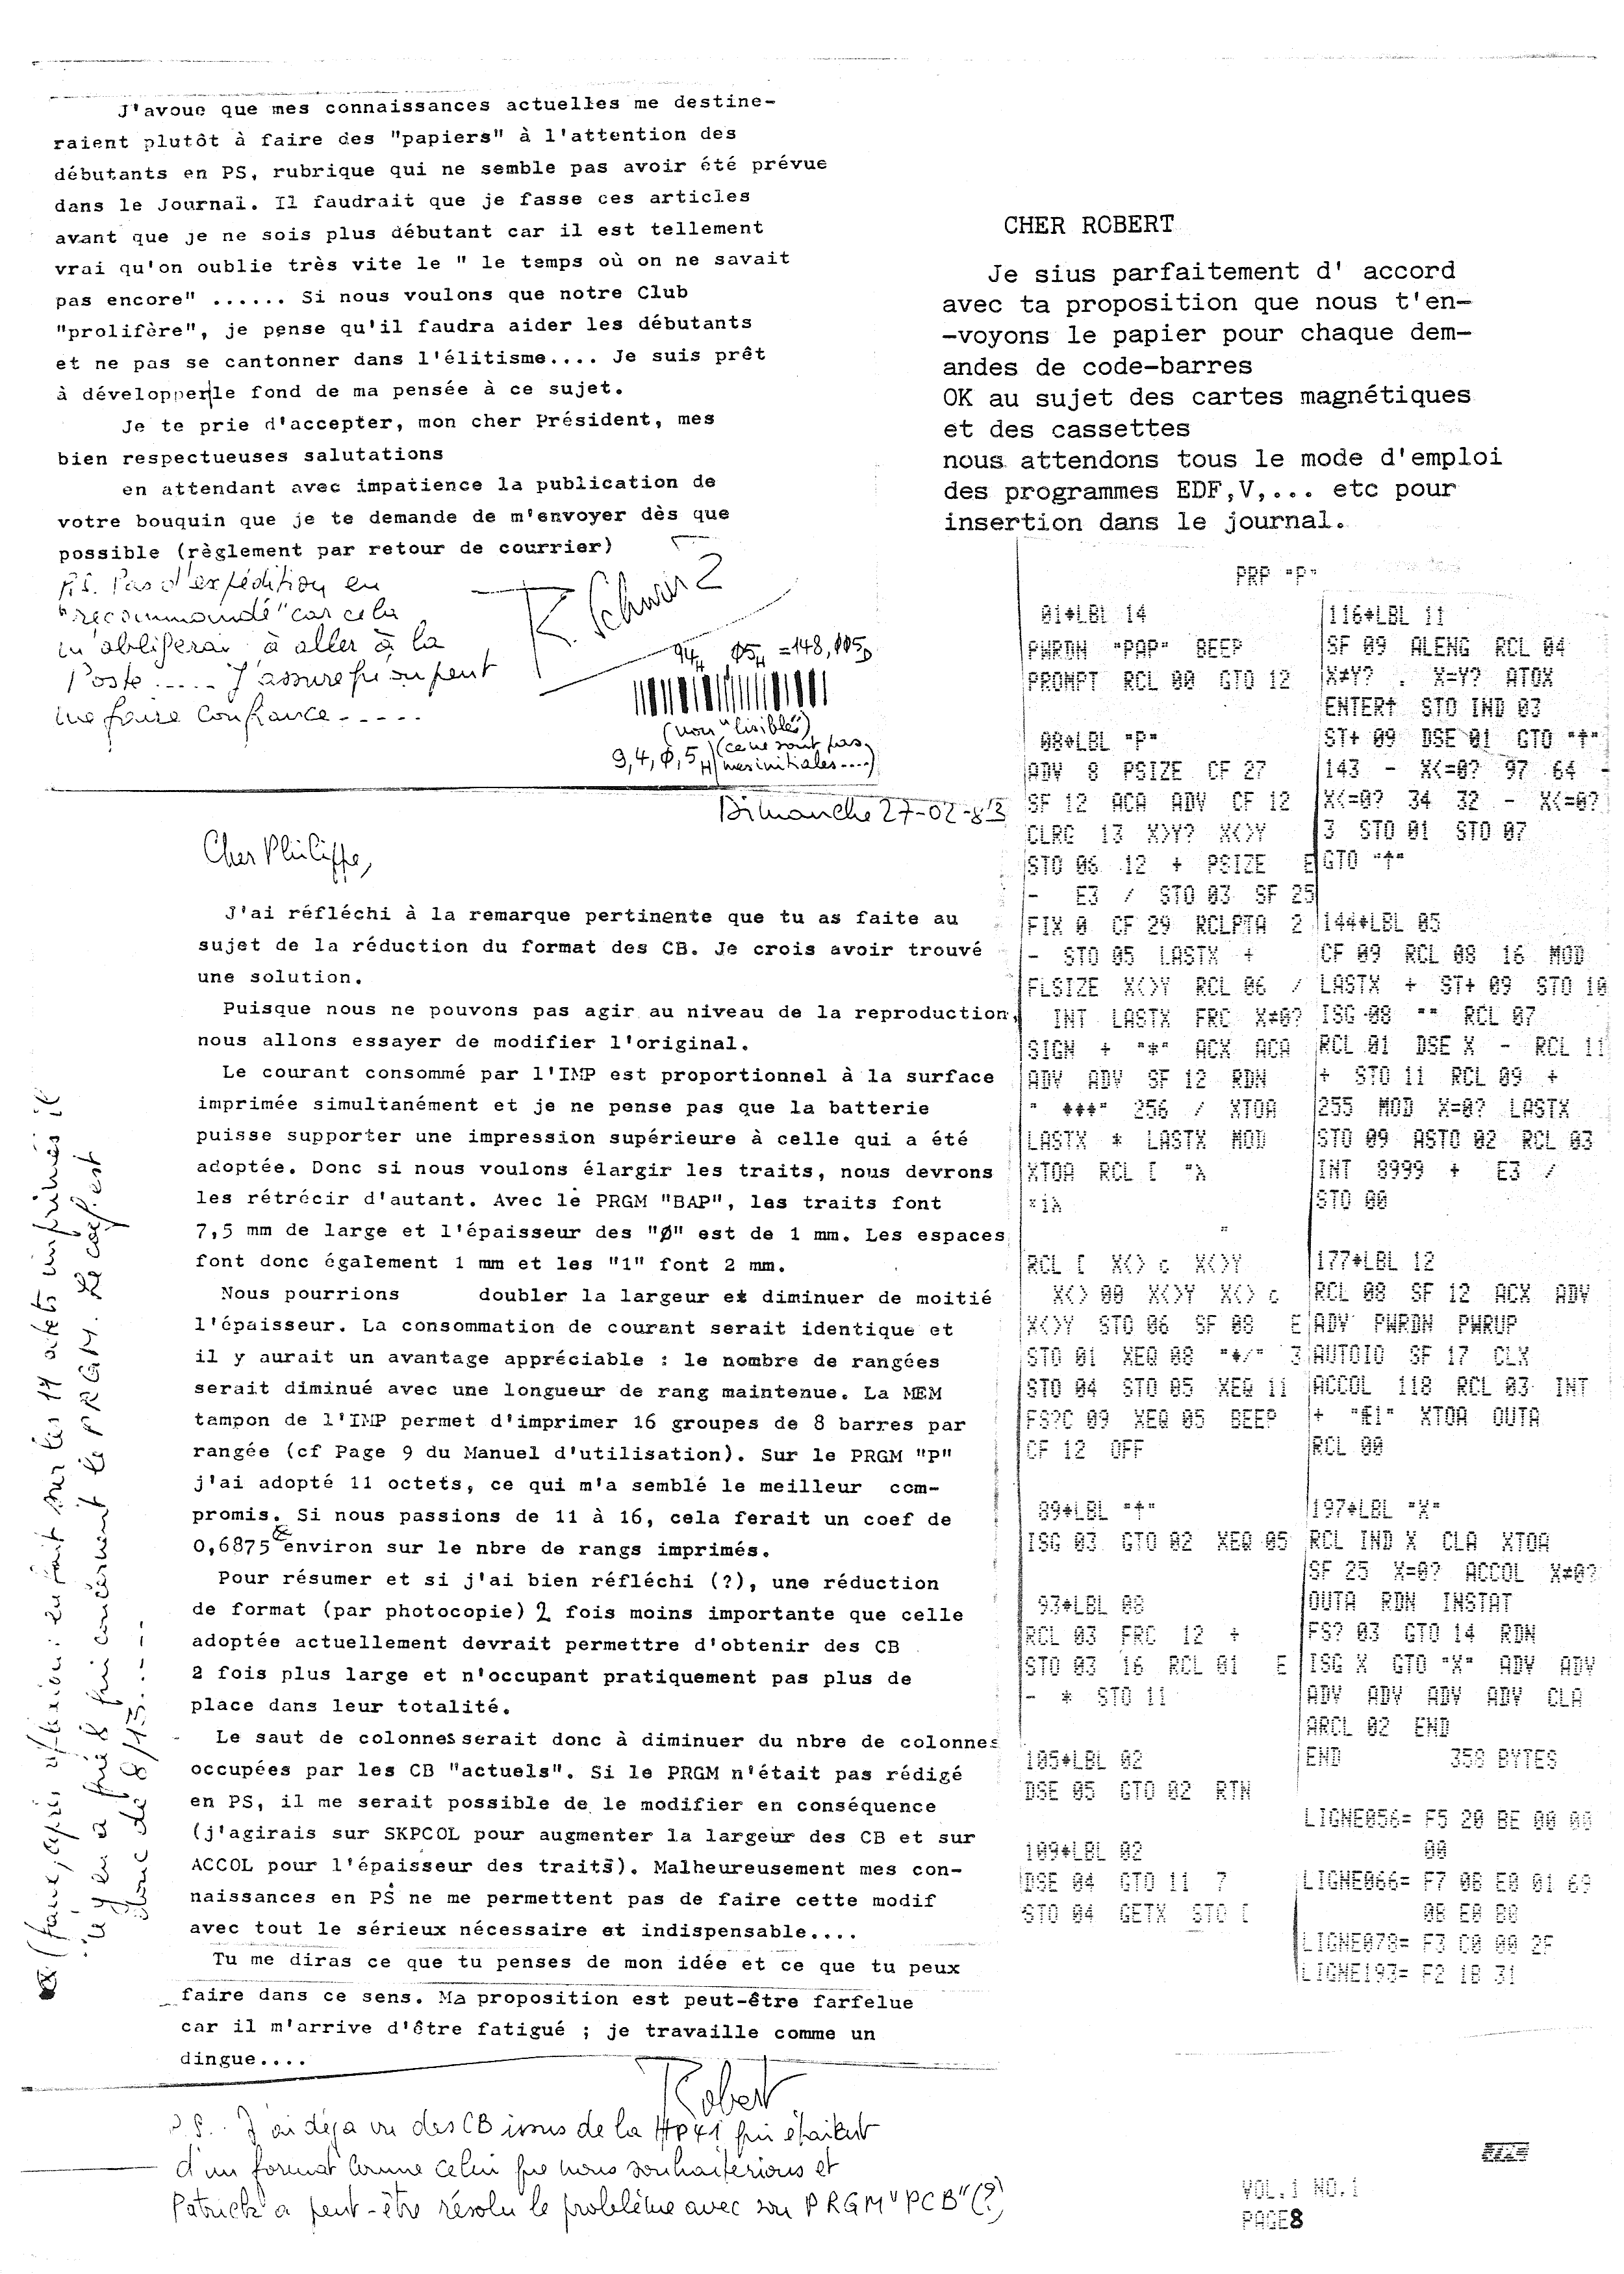 Jp-1-page-8-1000